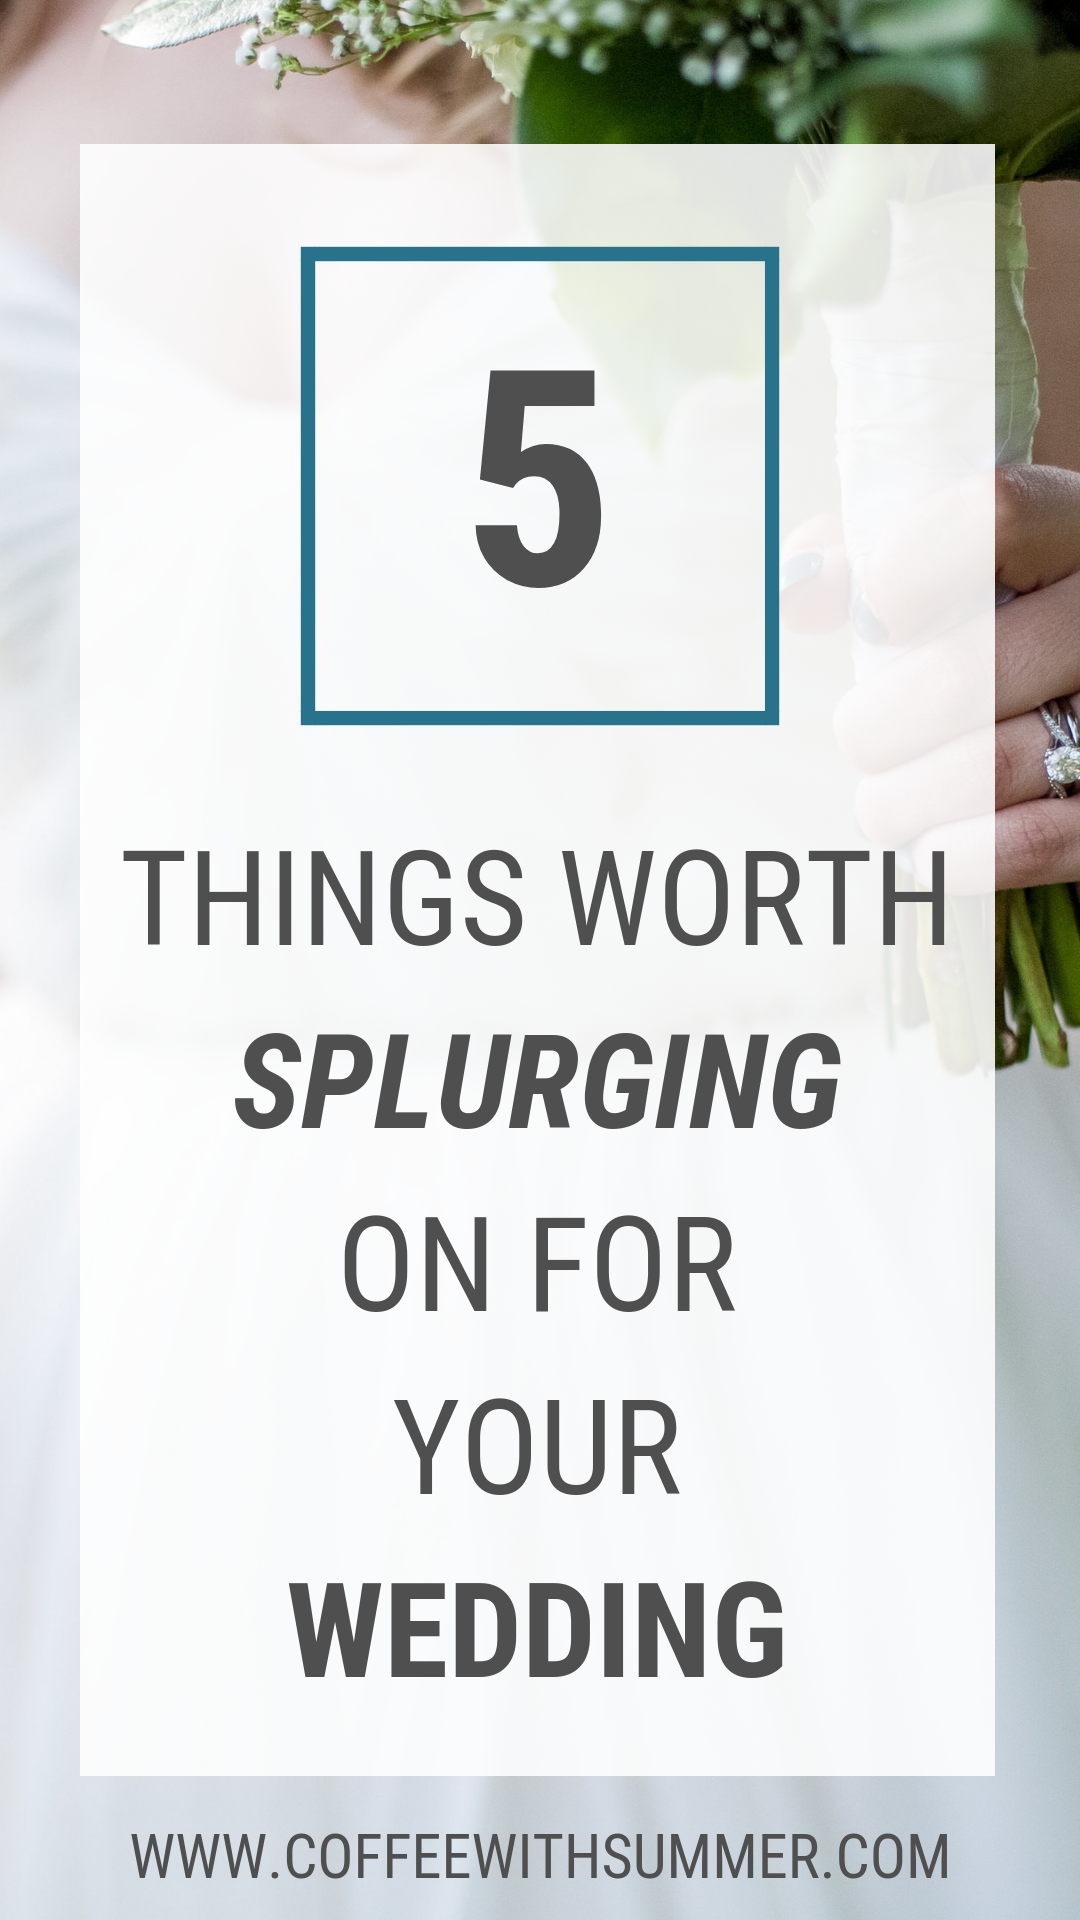 5 Things Worth Splurging On For Your Wedding